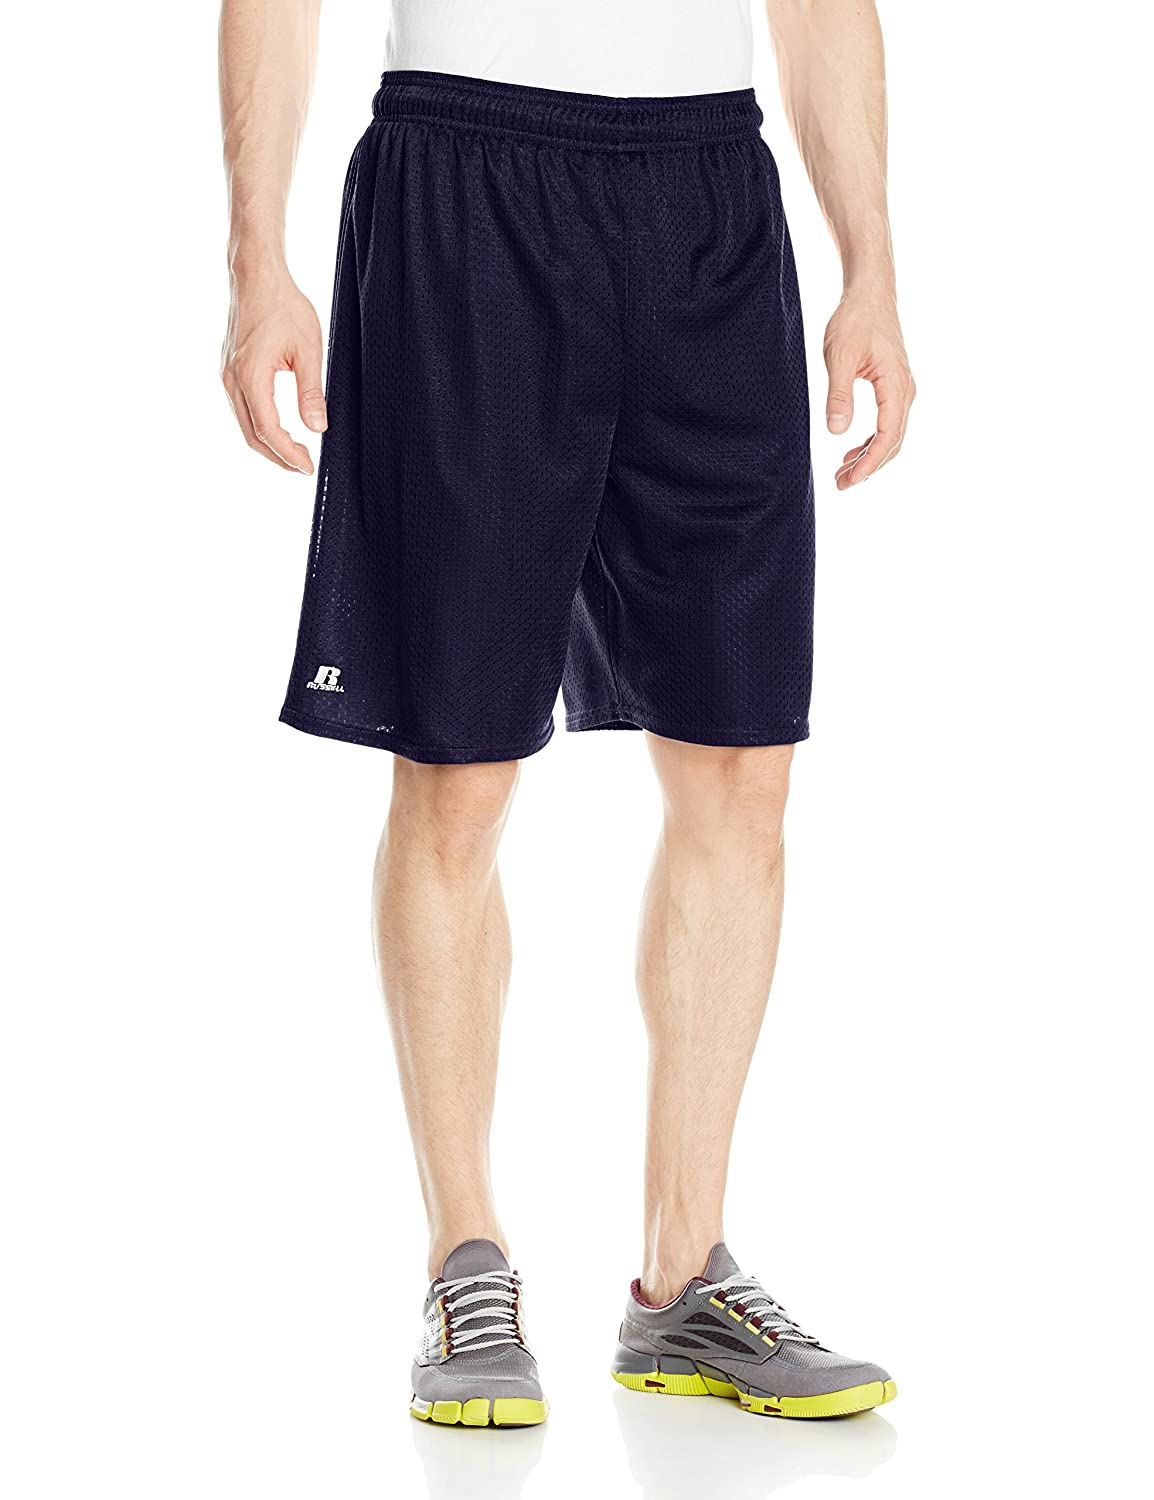 Russell Athletic Men's Mesh Shorts (No Pockets), Navy, 3X-Large 659AFMK